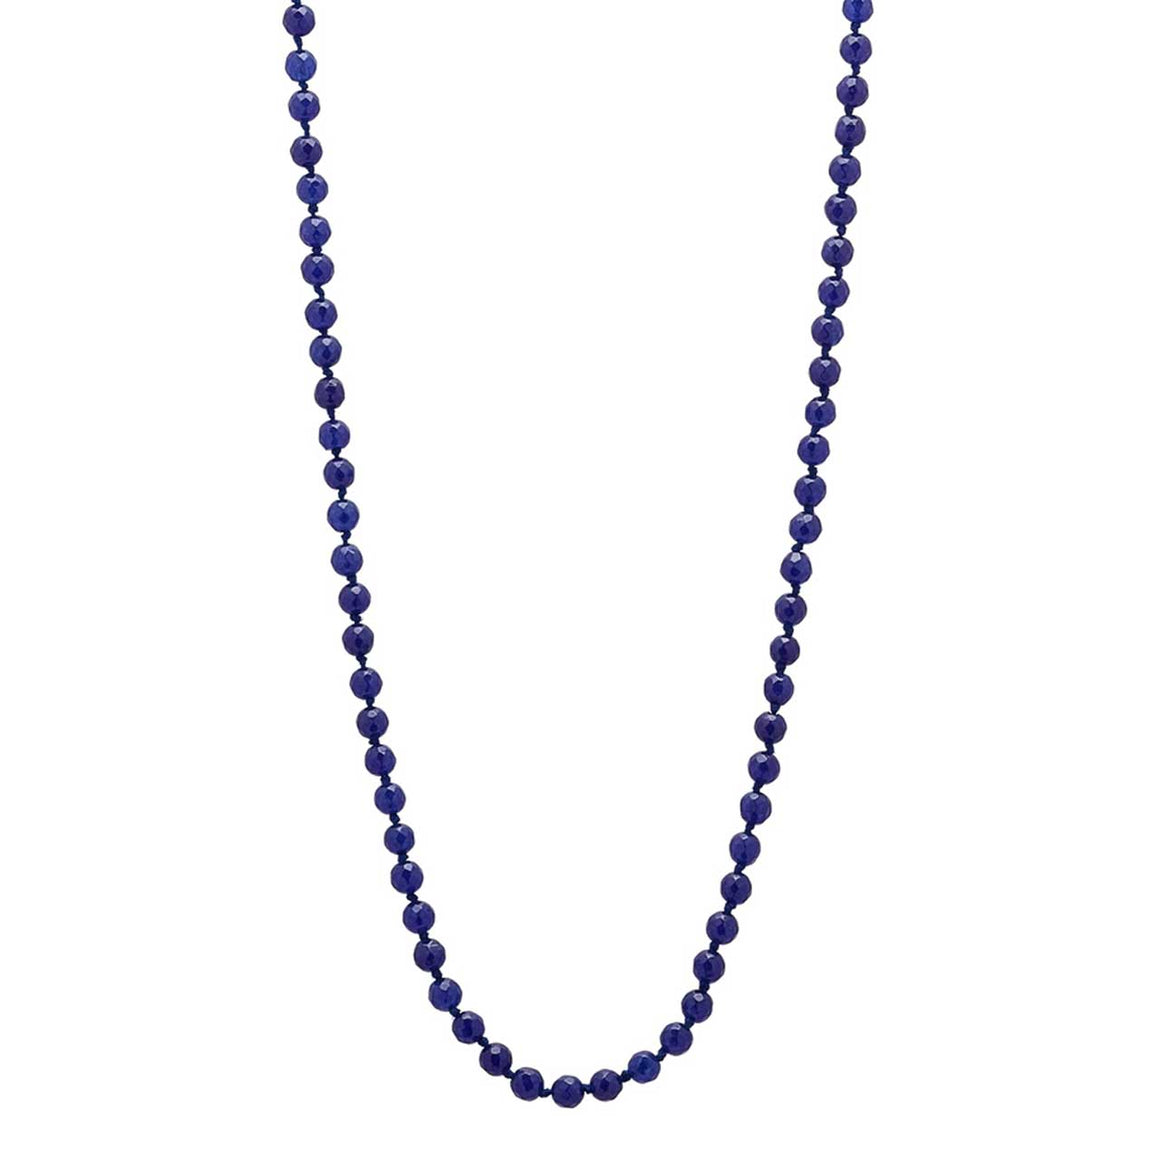 Navy Colored Quartz Gemstone Beaded Necklace 36""